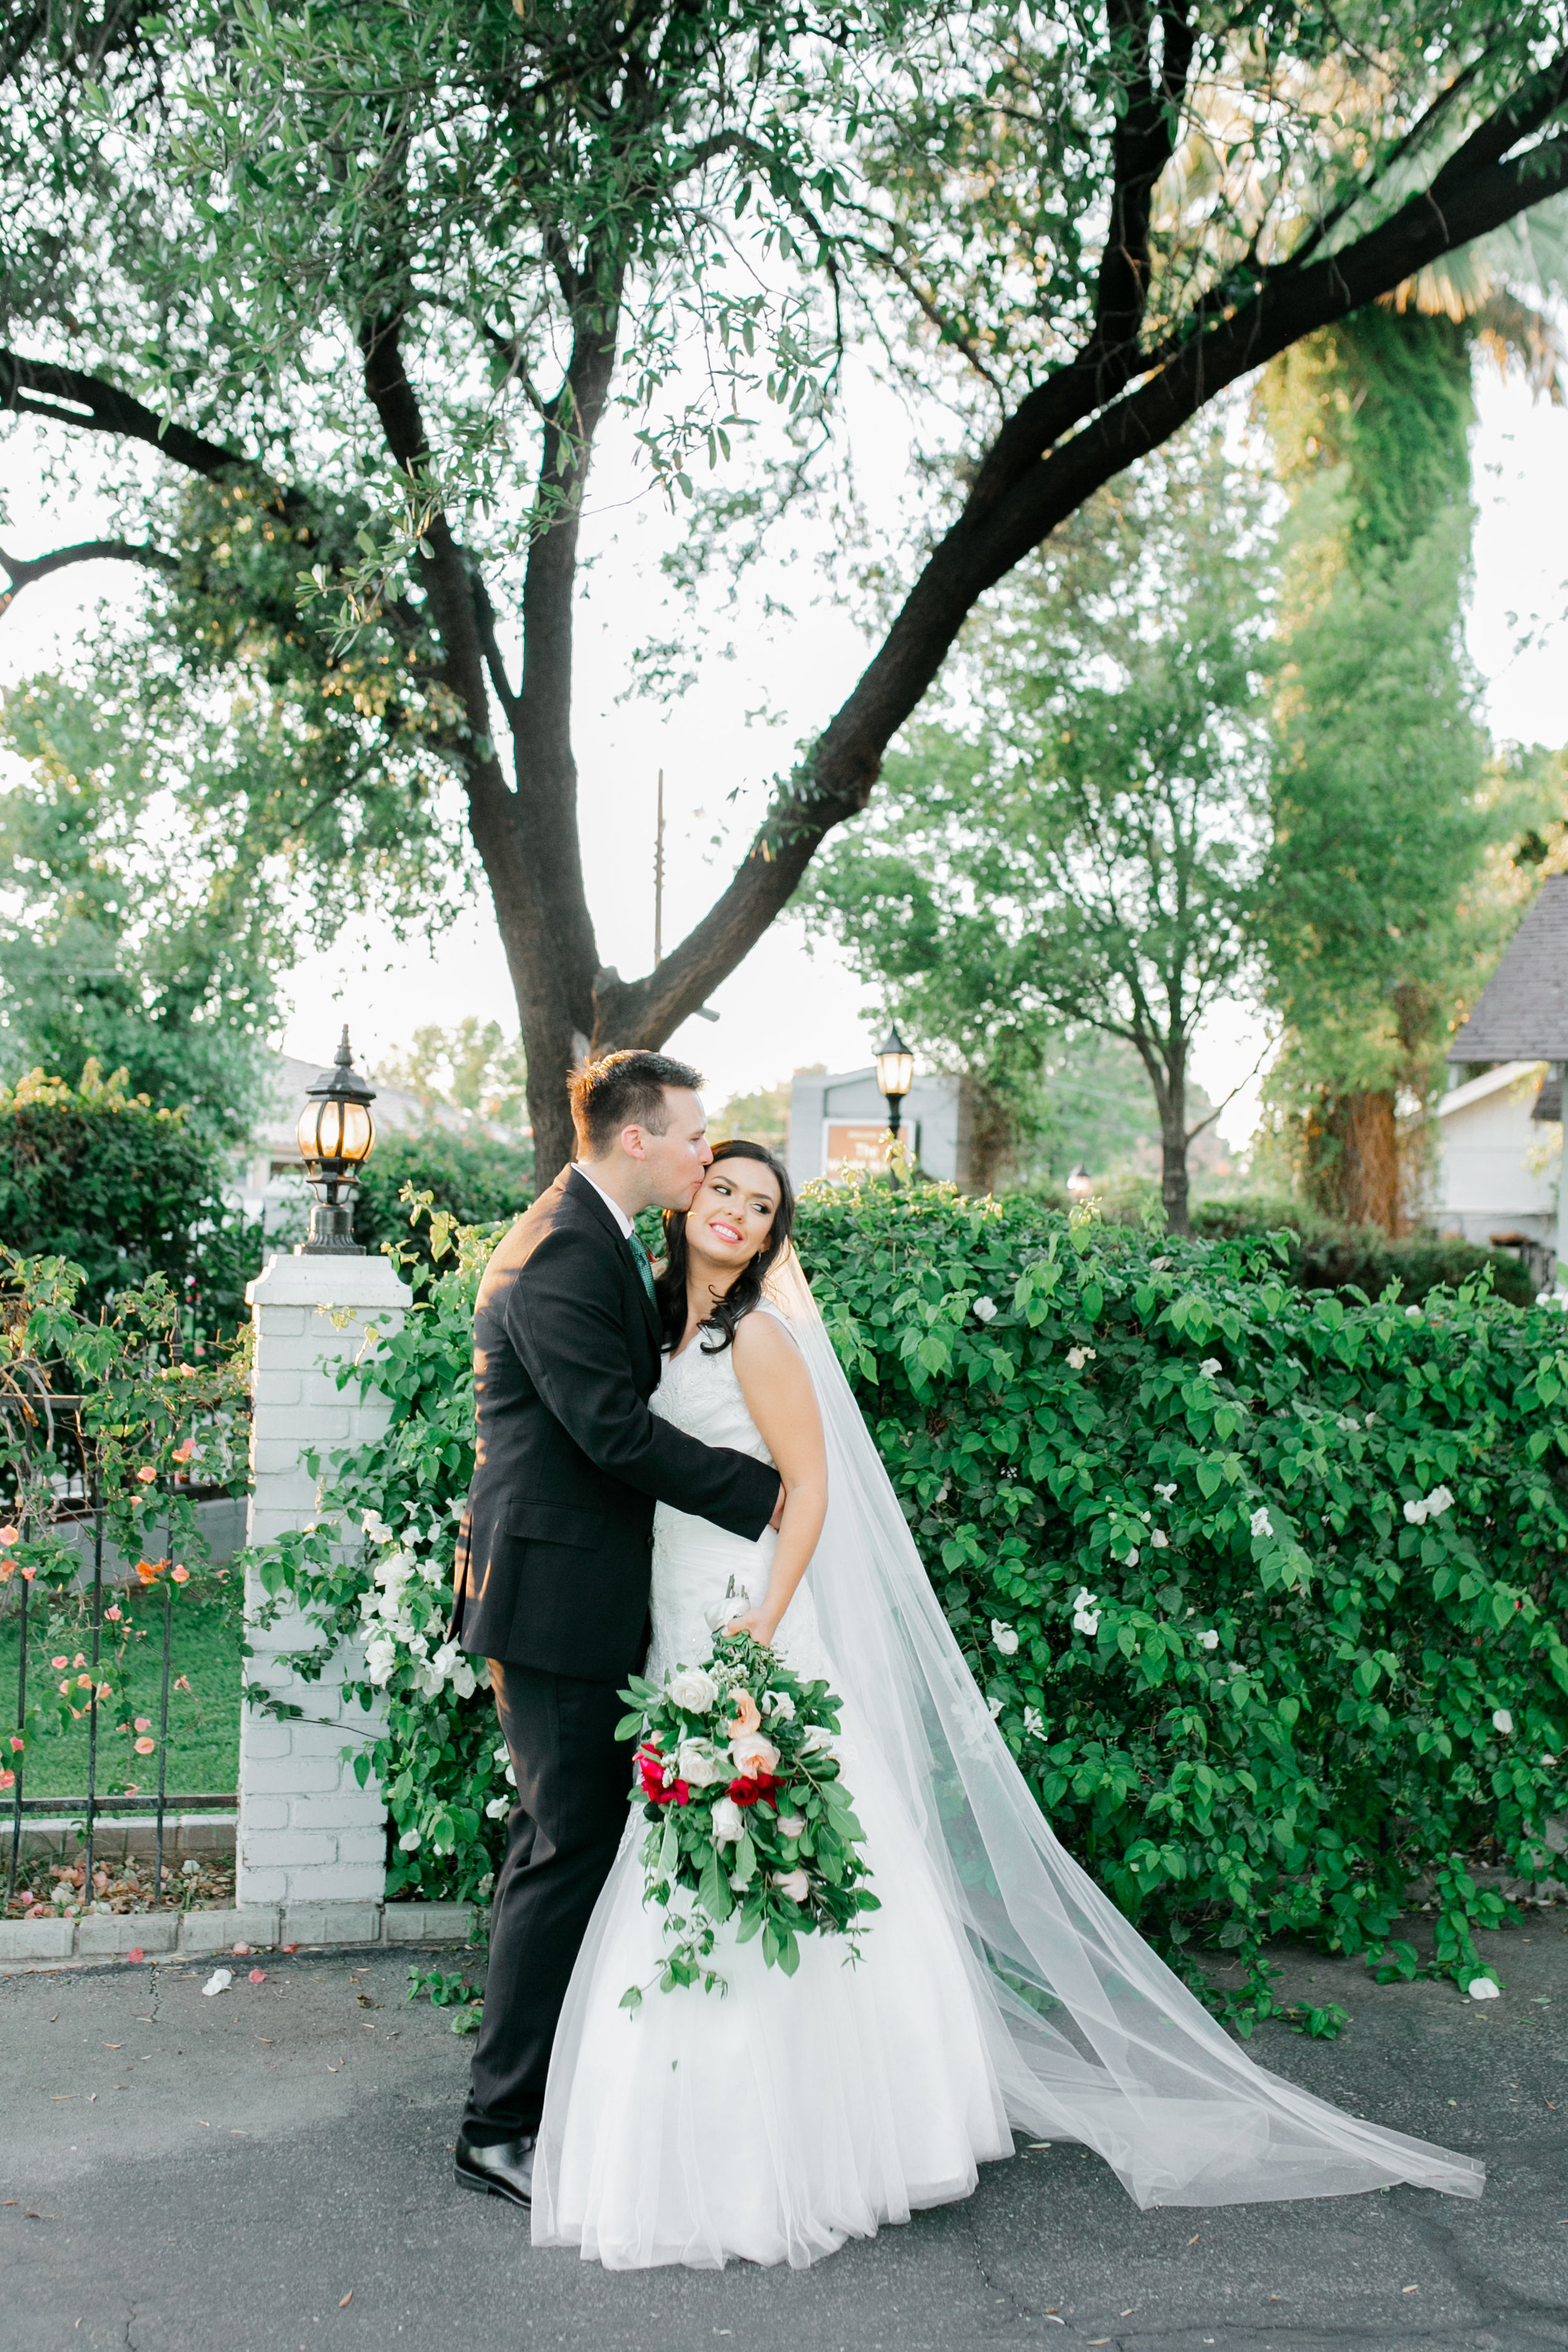 Karlie Colleen Photography - Claire & PJ Sneak Peak- The Wright House - Phoenix Arizona -144